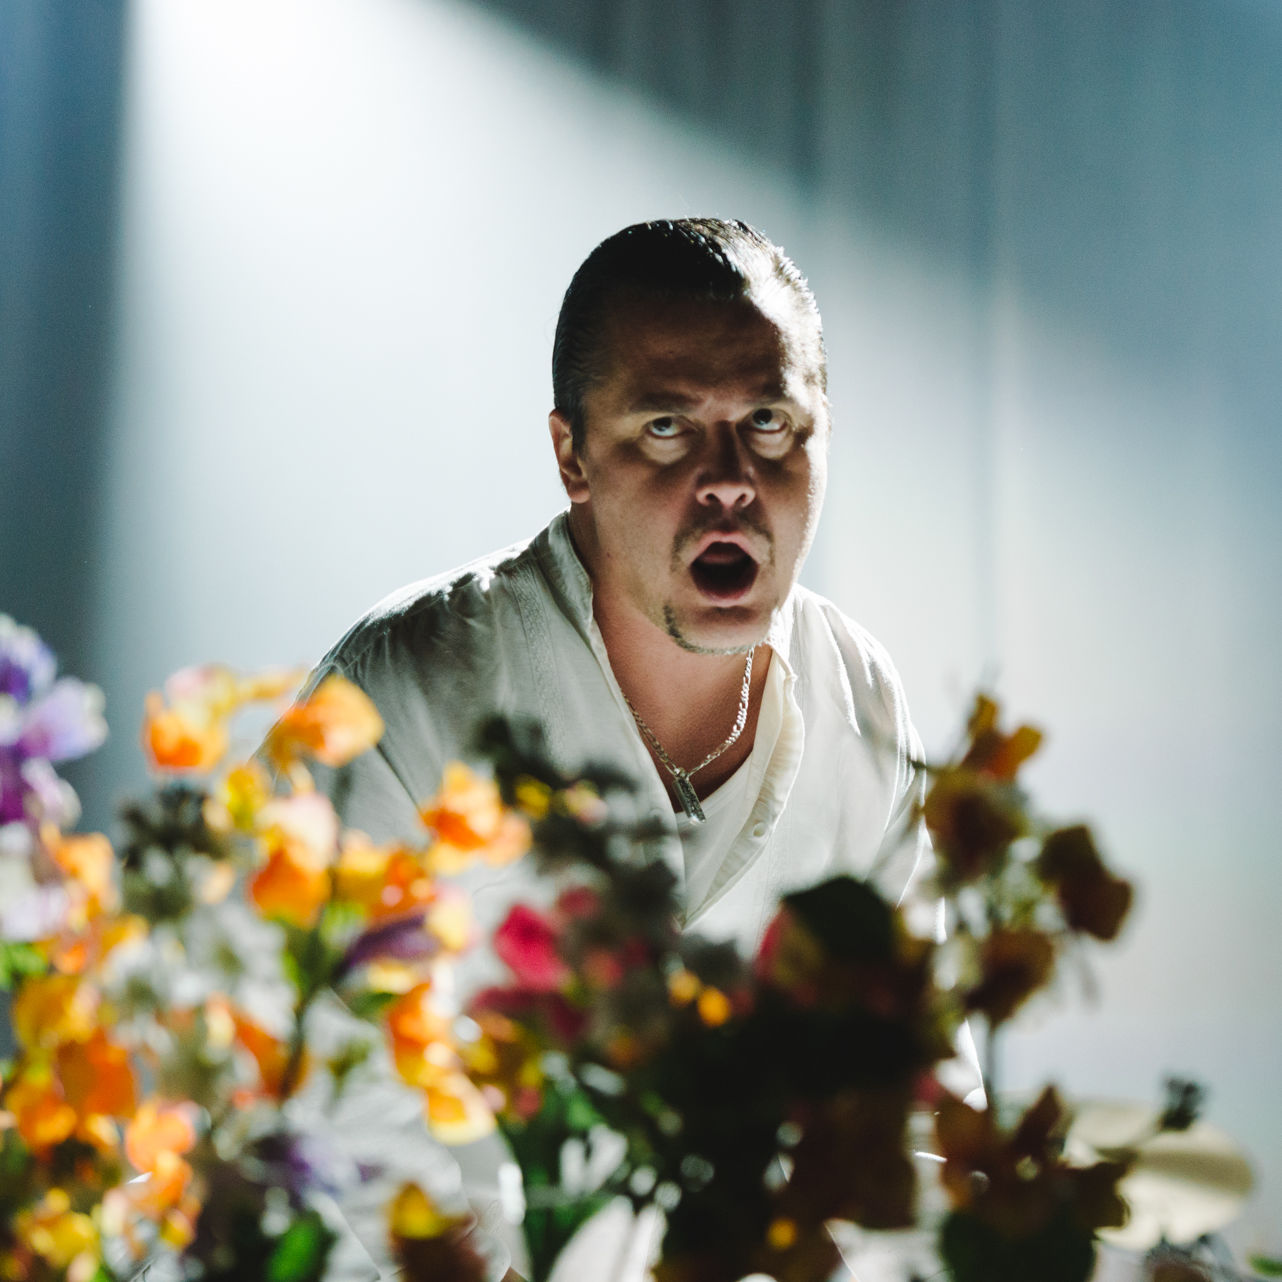 20150906 amberzbitnoffknecht bumbershoot2015 050 faith no more web i1oacb